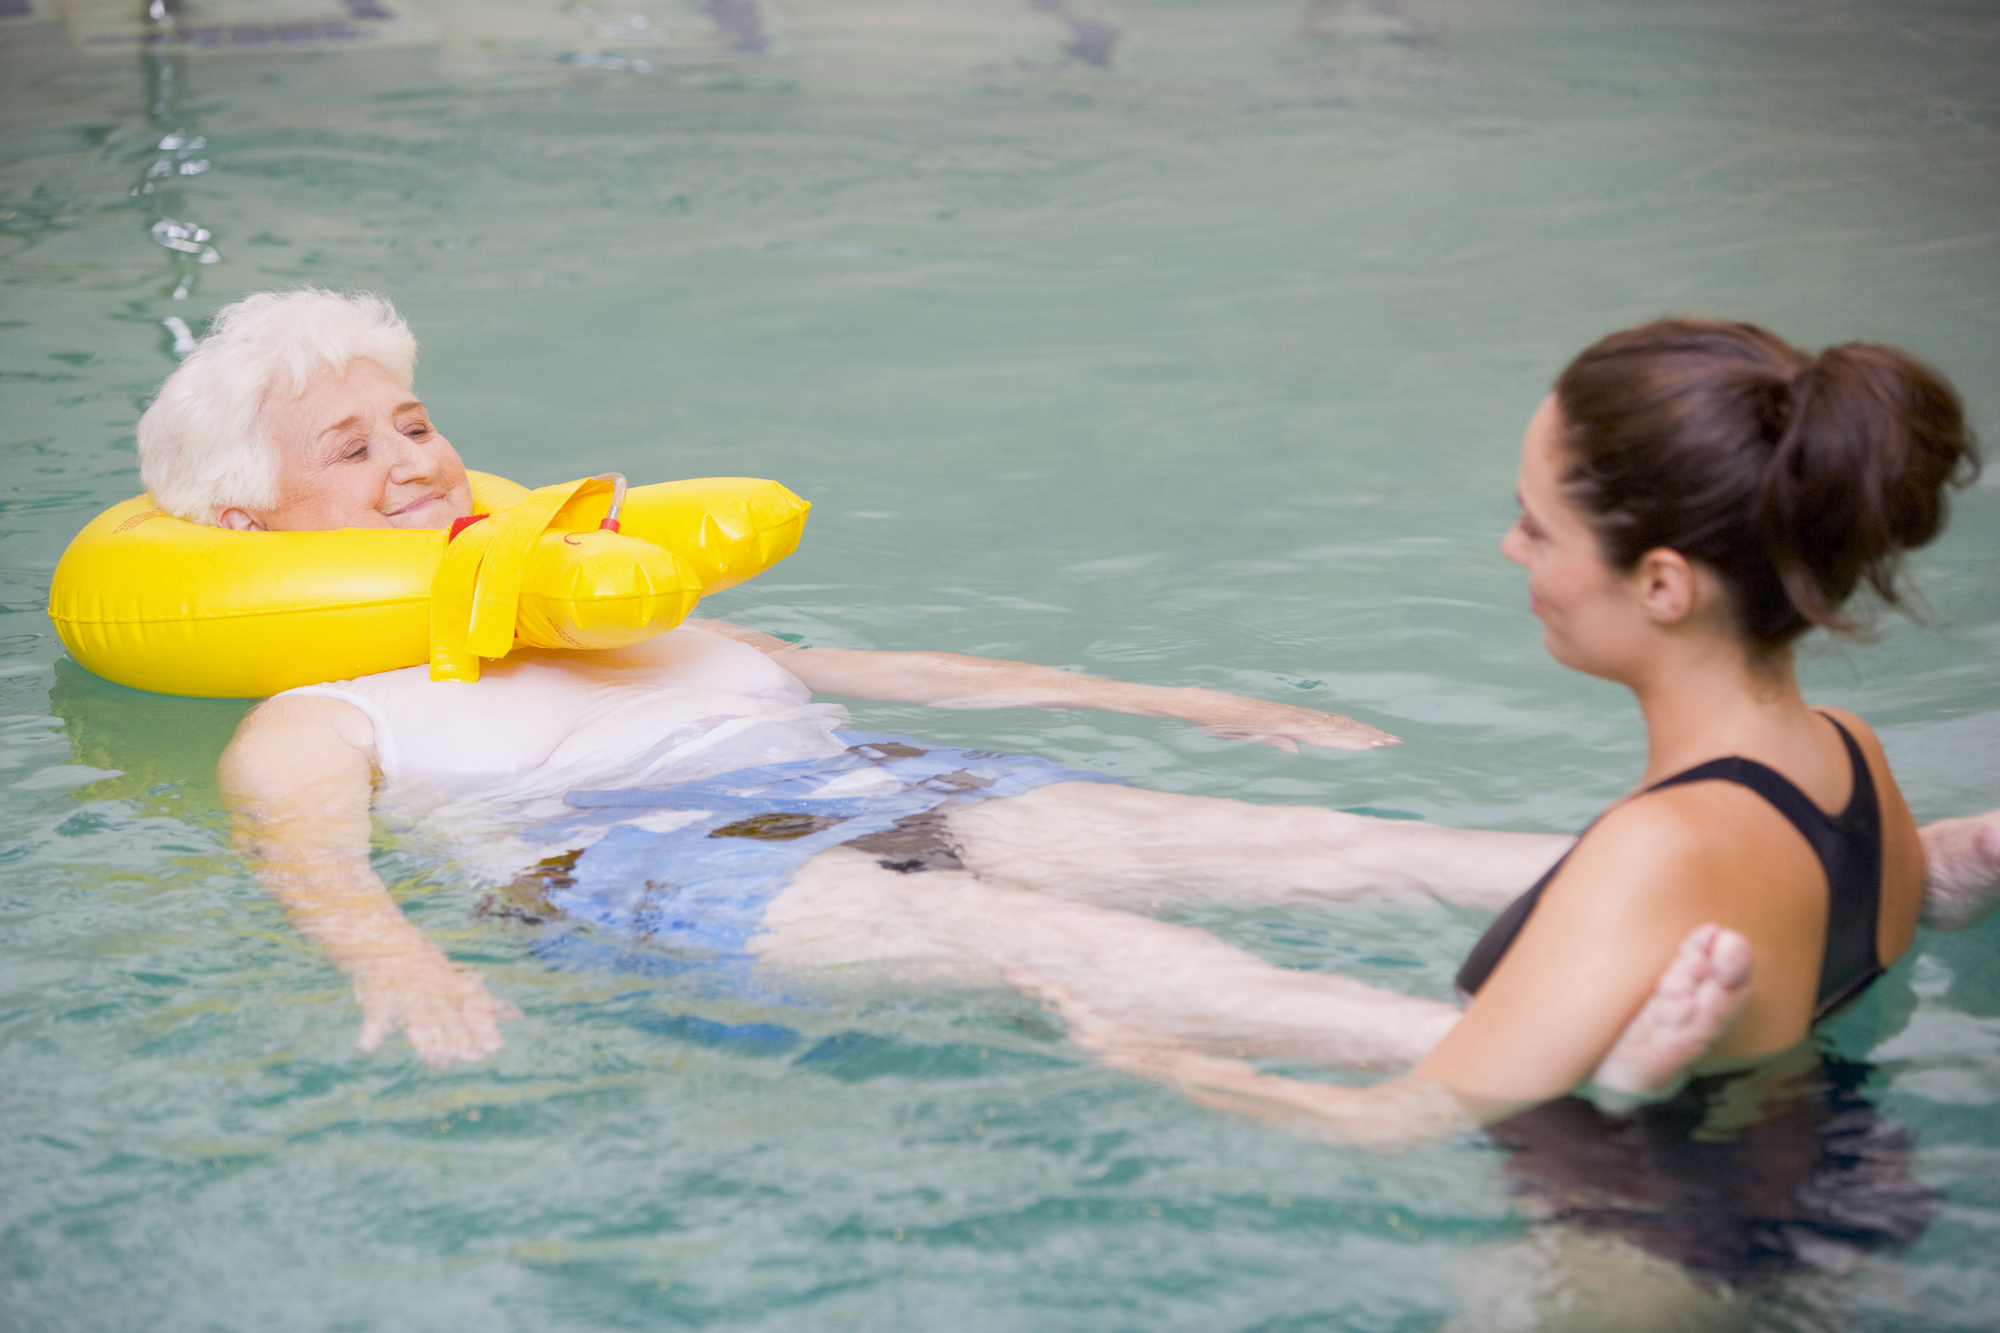 a contrast between aquatic therapy and traditional therapy in treating arthritis At chesapeake bay aquatic & physical therapy we treat patients of all ages, backgrounds and interests our therapists have a wide range of experience treating professional and recreational athletes as well as individuals who have suffered injuries at work or in accidents involving personal injury download our brochure our services include: aquatic therapy.